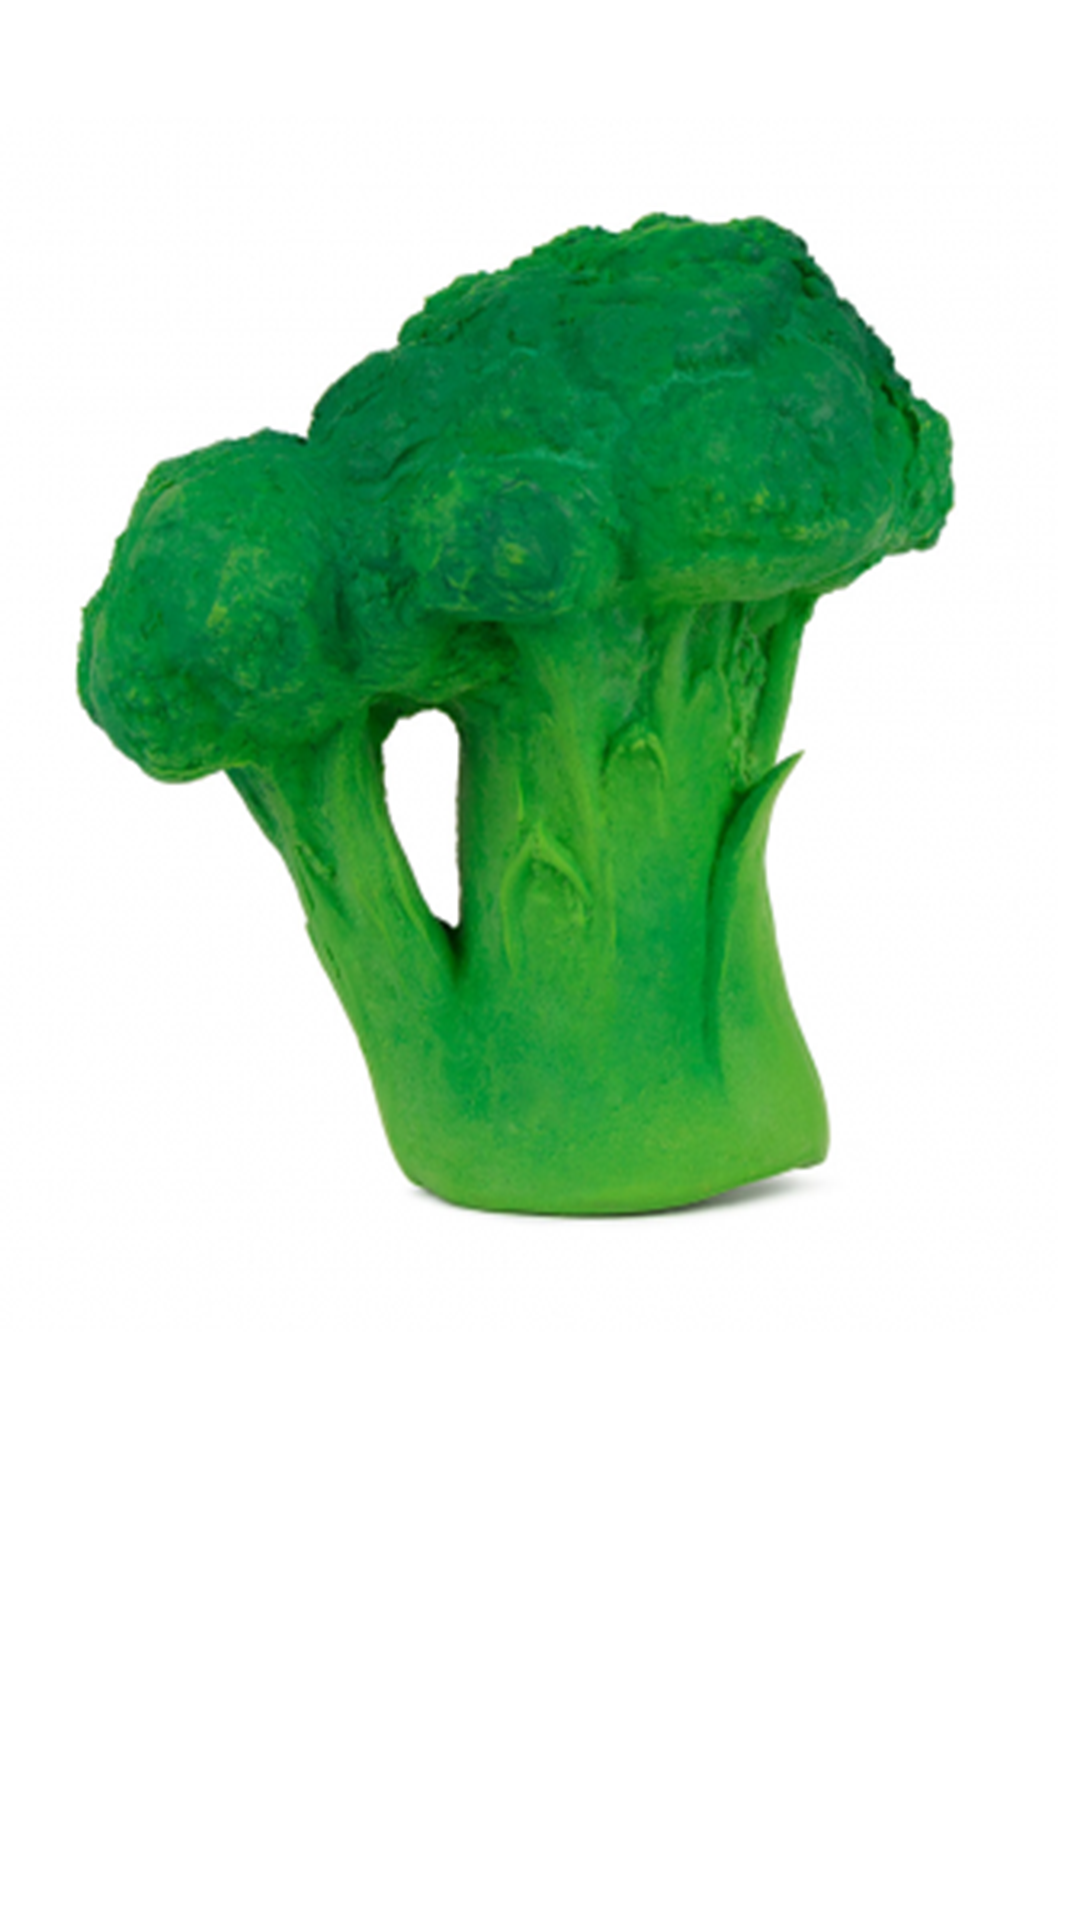 Brucy the Broccoli - Chewable Toy